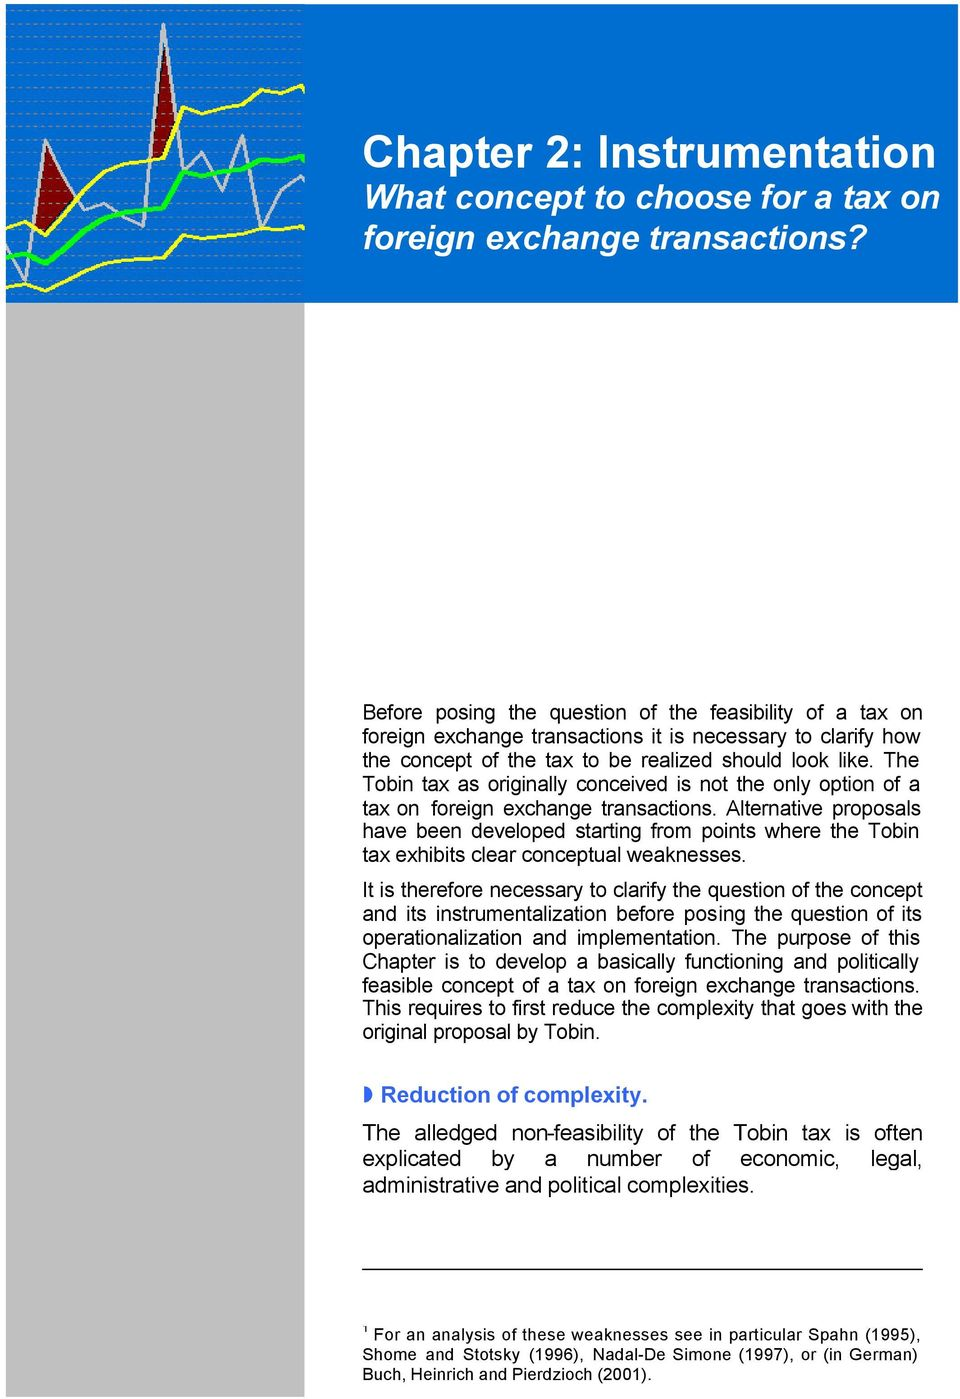 The Tobin tax as originally conceived is not the only option of a tax on foreign exchange transactions.